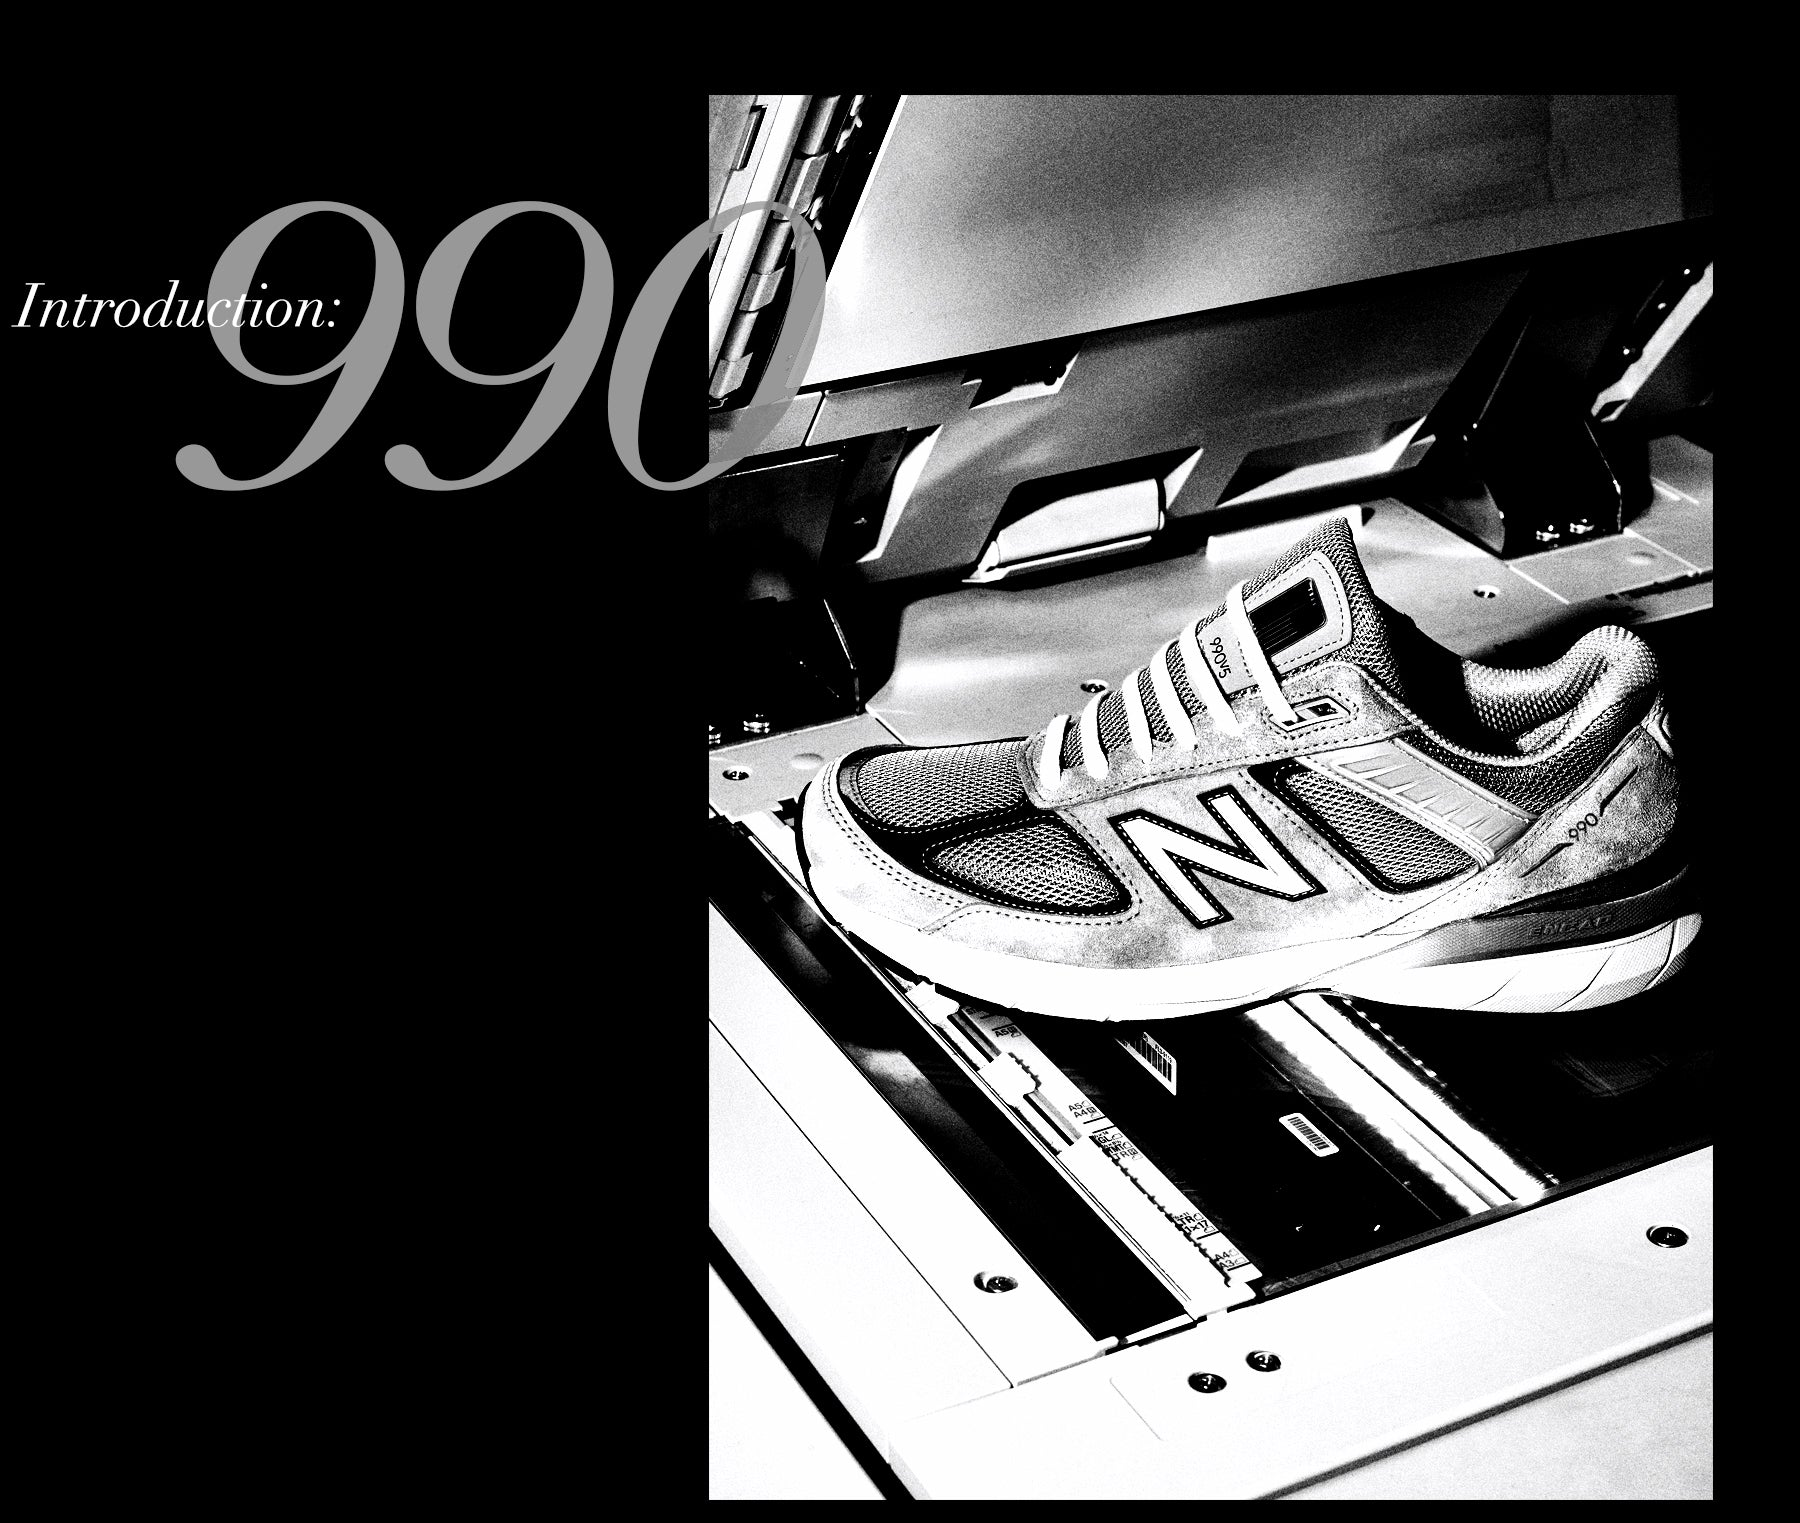 new style 1213f 8870a INTRODUCTION: NEW BALANCE 990 | BLENDS